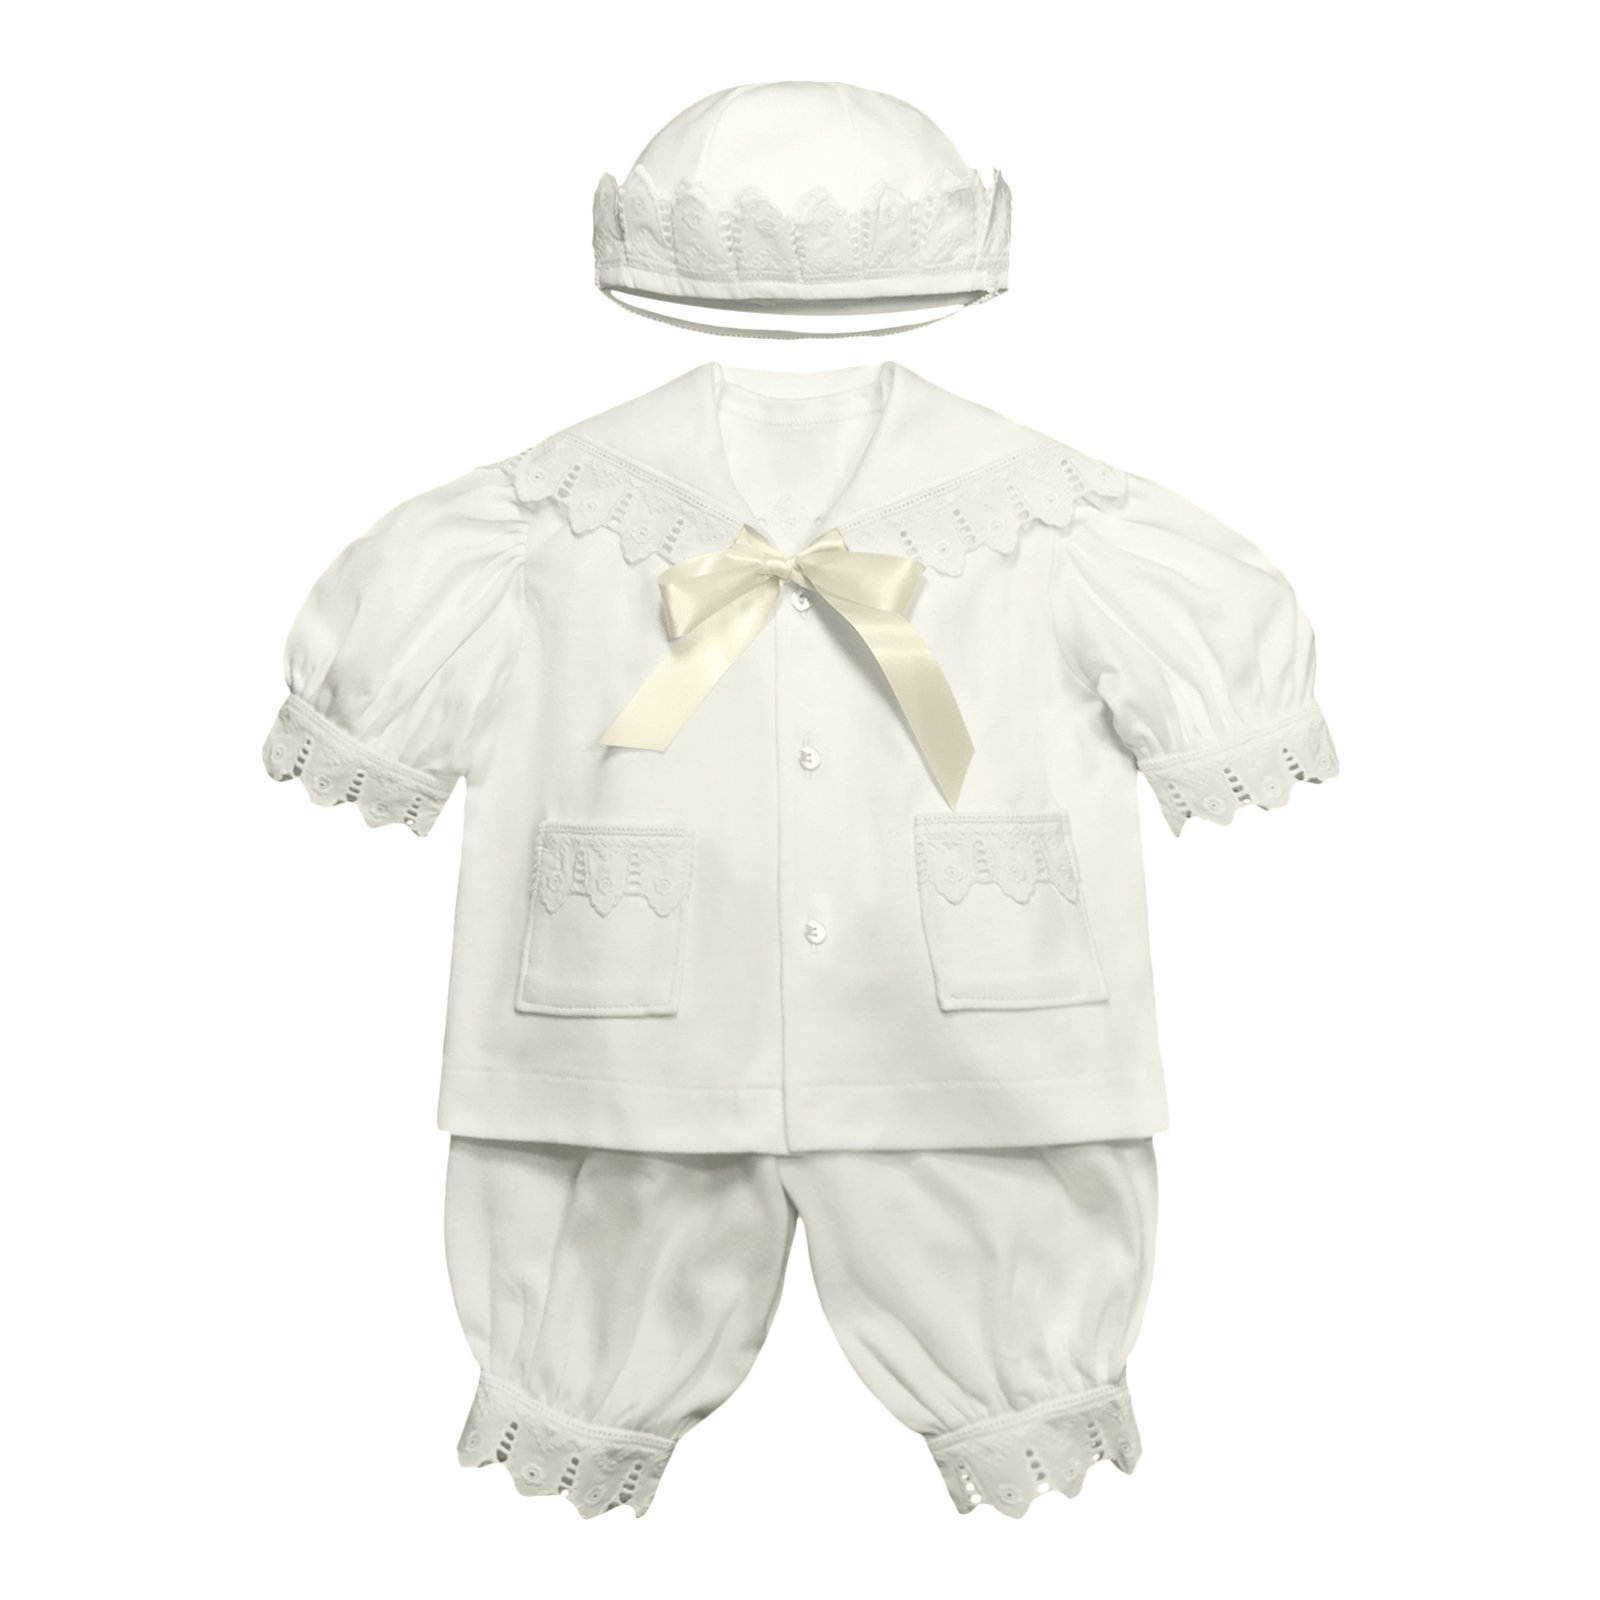 Victorian Organics Baby Boy Sailor Set 4 Piece Organic Cotton Knit and Eyelet Lace Trim Jacket Hat Bodysuit and Pantaloons (3M 3-6 Months)